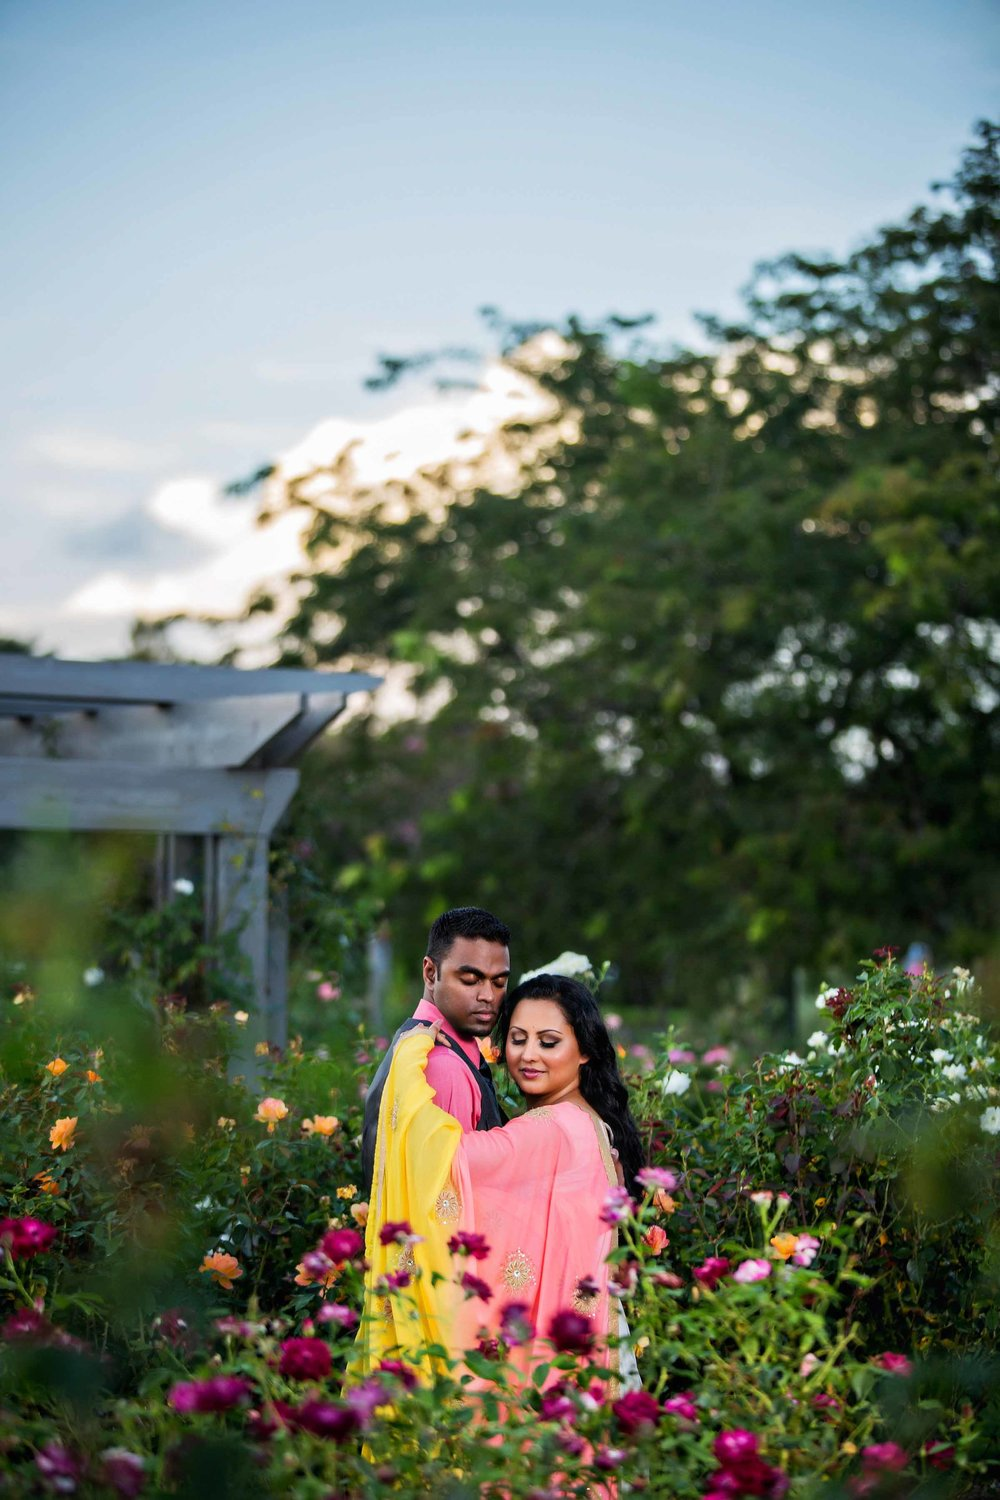 Norfolk Botanical Garden Engagement Portrait Photograph - Sharon And Merwyn - by John Cachero for Ross Costanza Photography